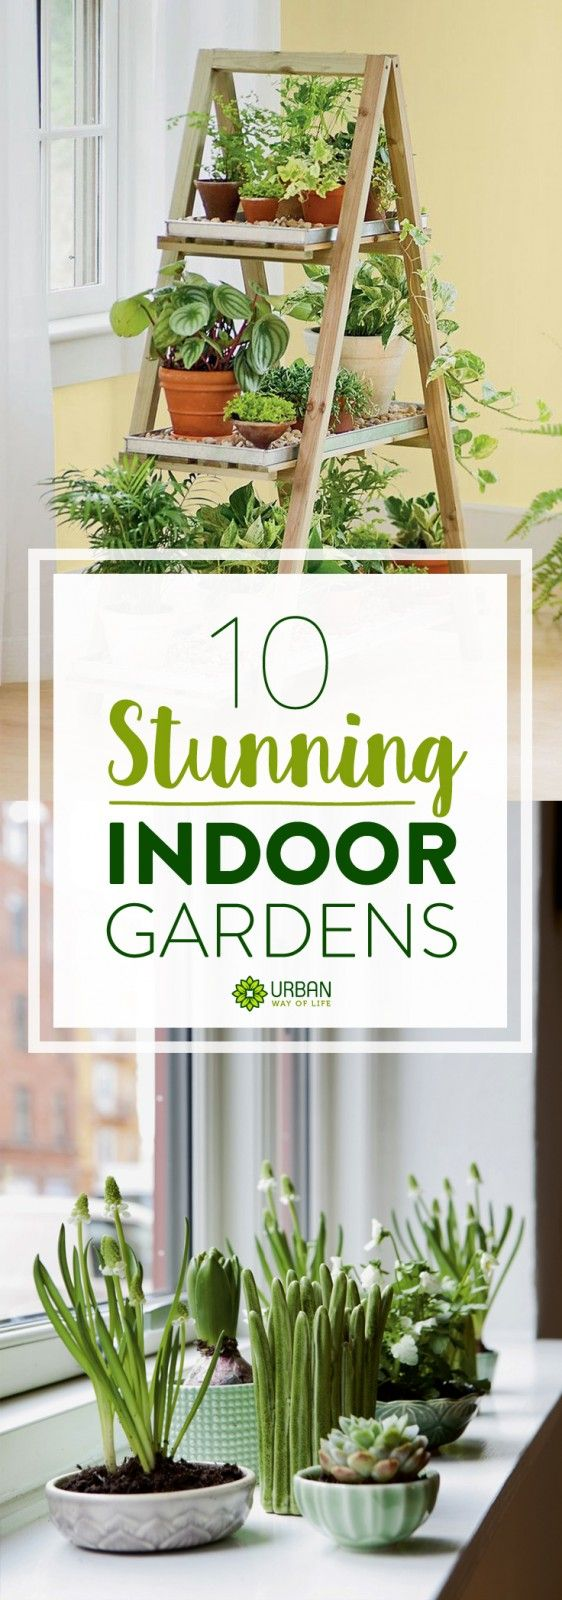 25 Best Ideas About Indoor Gardening On Pinterest Indoor Herbs